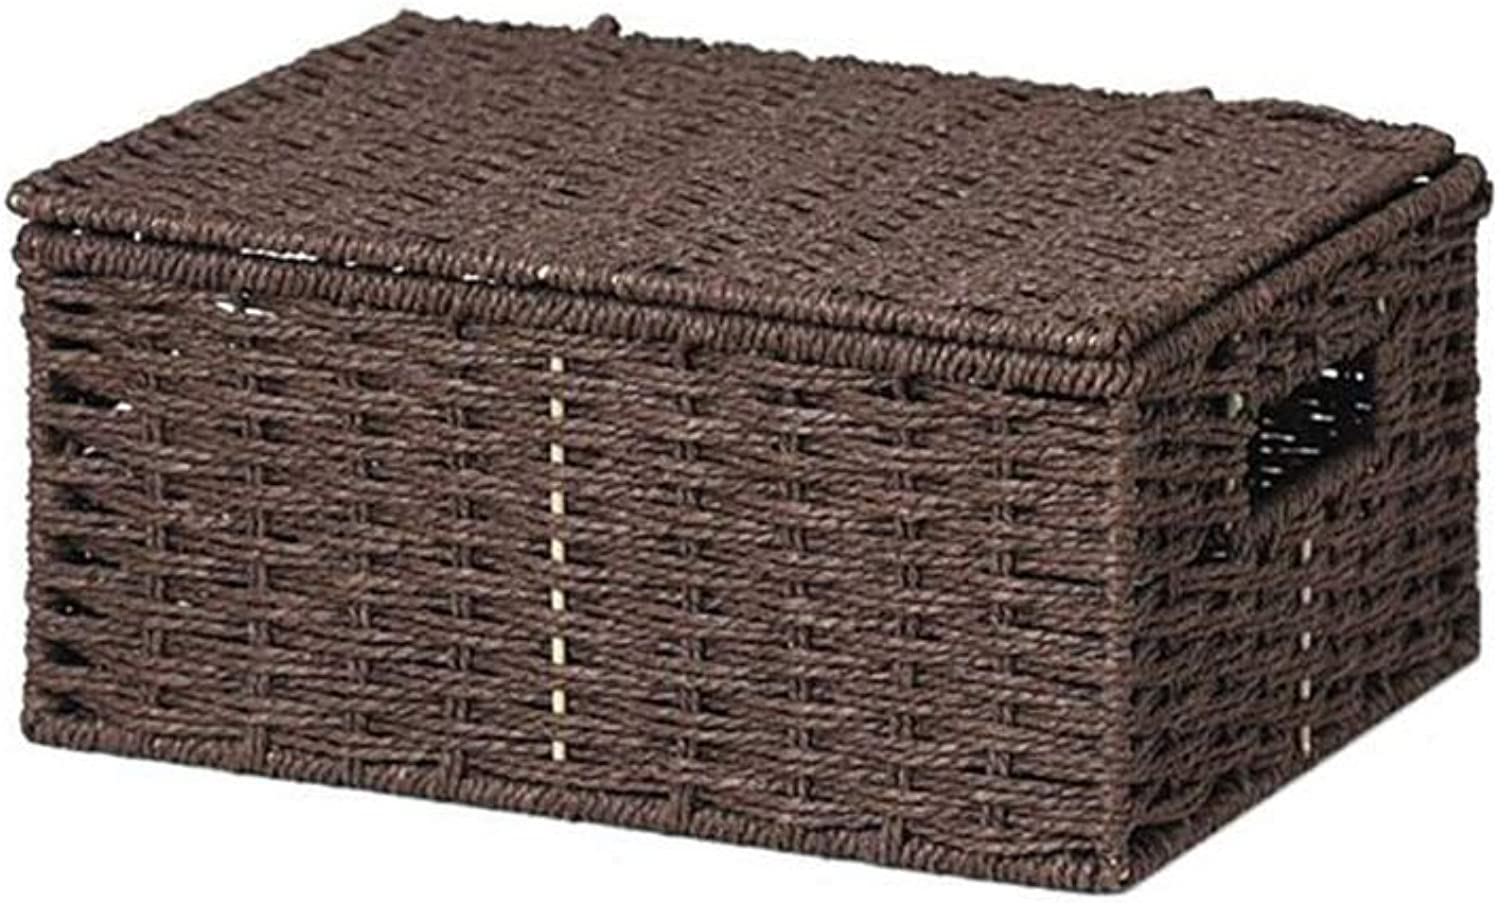 MUMA Storage Box Handicraft Woven with Lid Handle Sundries Snack Desktop Organizer Container (color   Coffee color, Size   30x22x14cm)